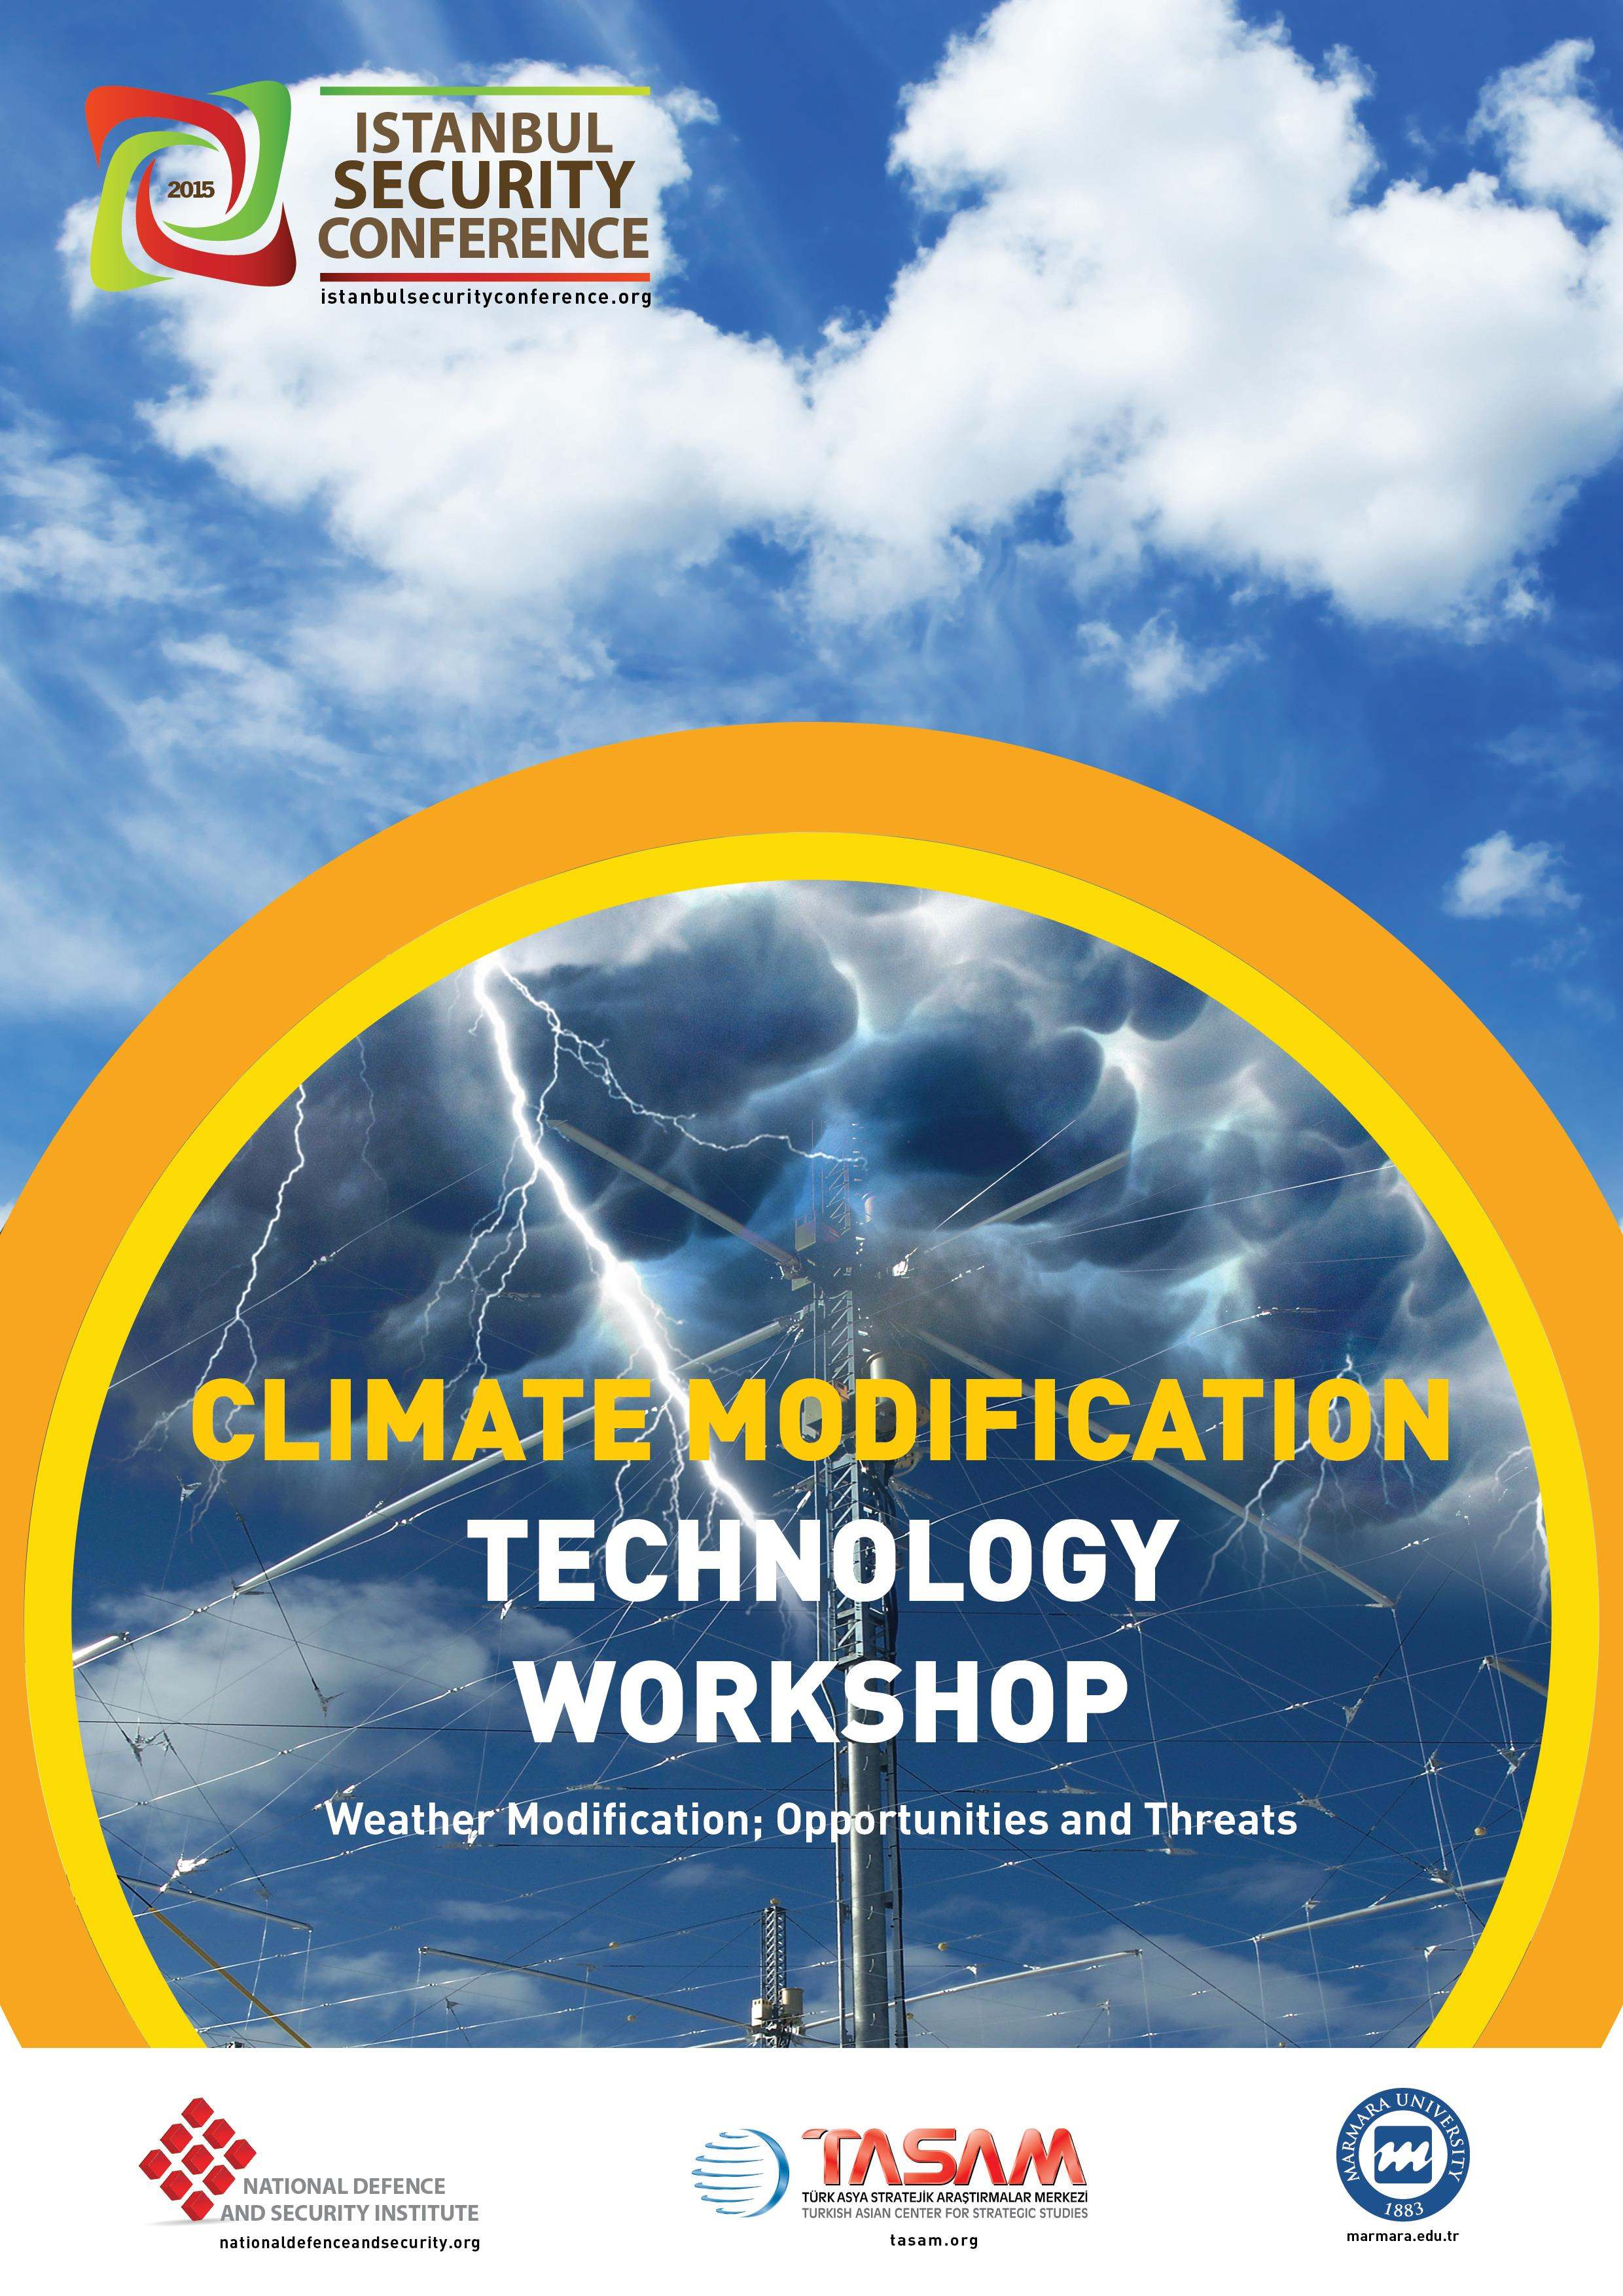 Climate Modification Technology Workshop | Istanbul Security Conference 2015